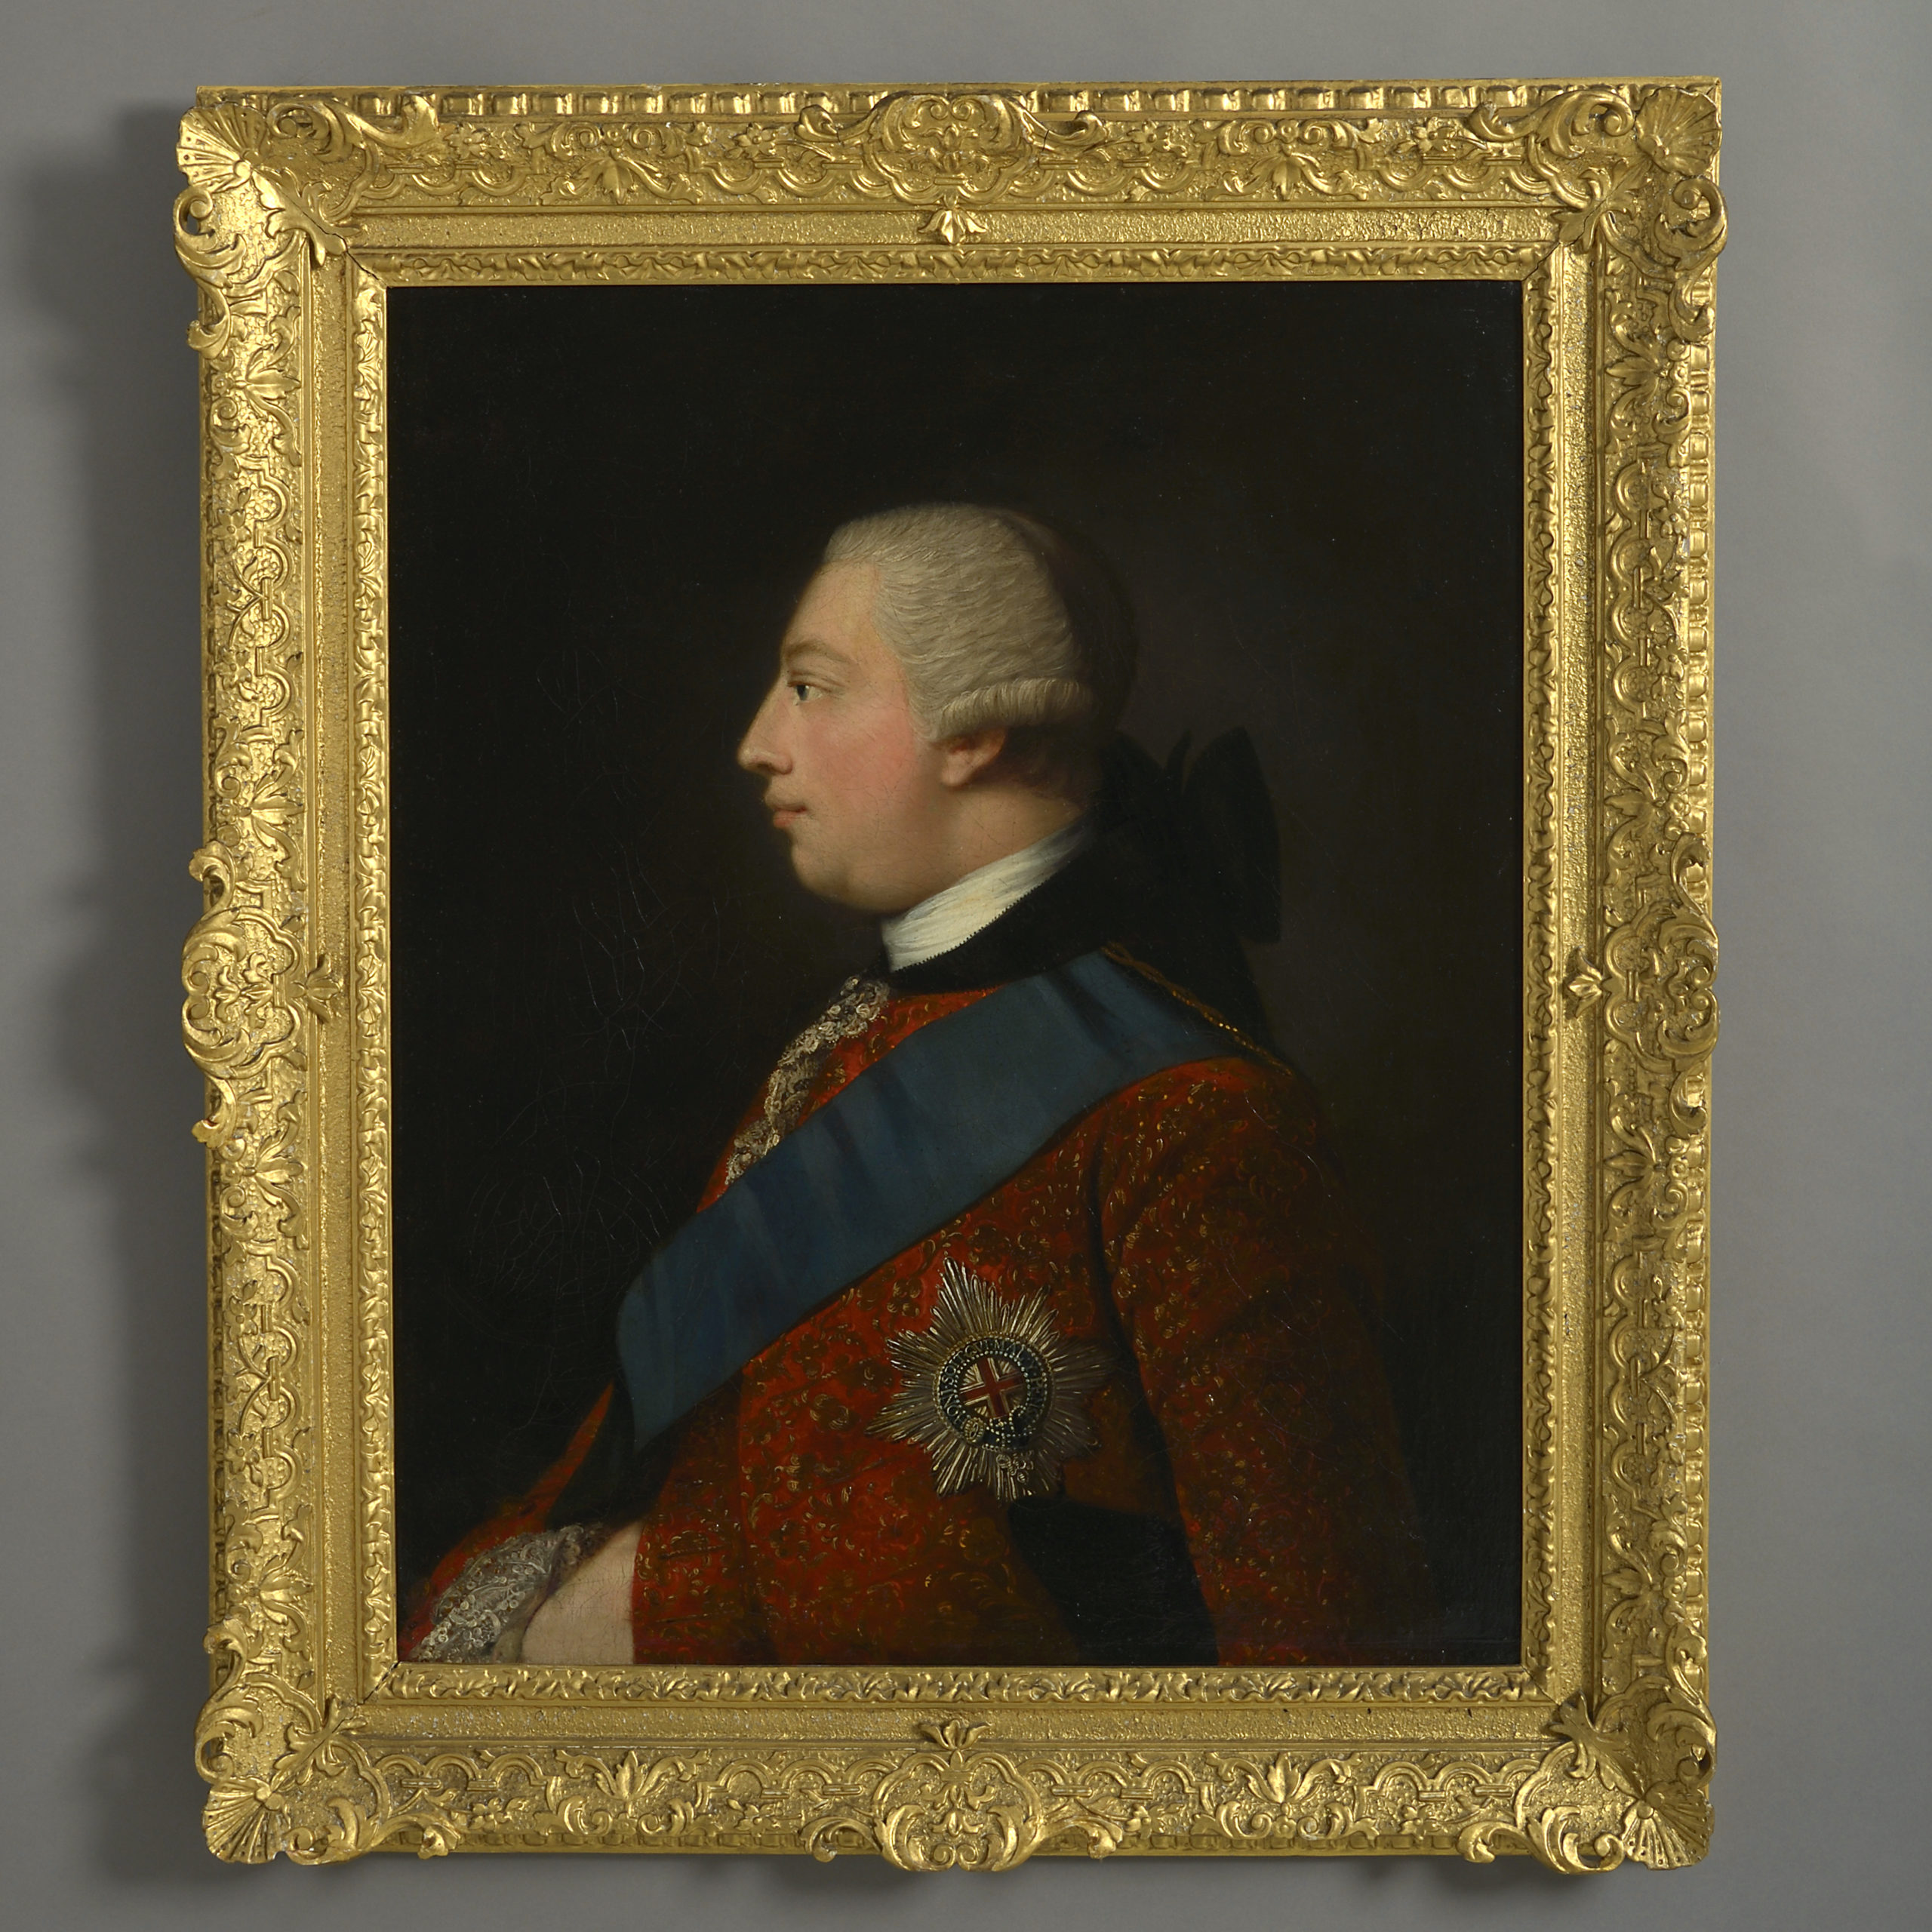 Ramsay Portrait of George III